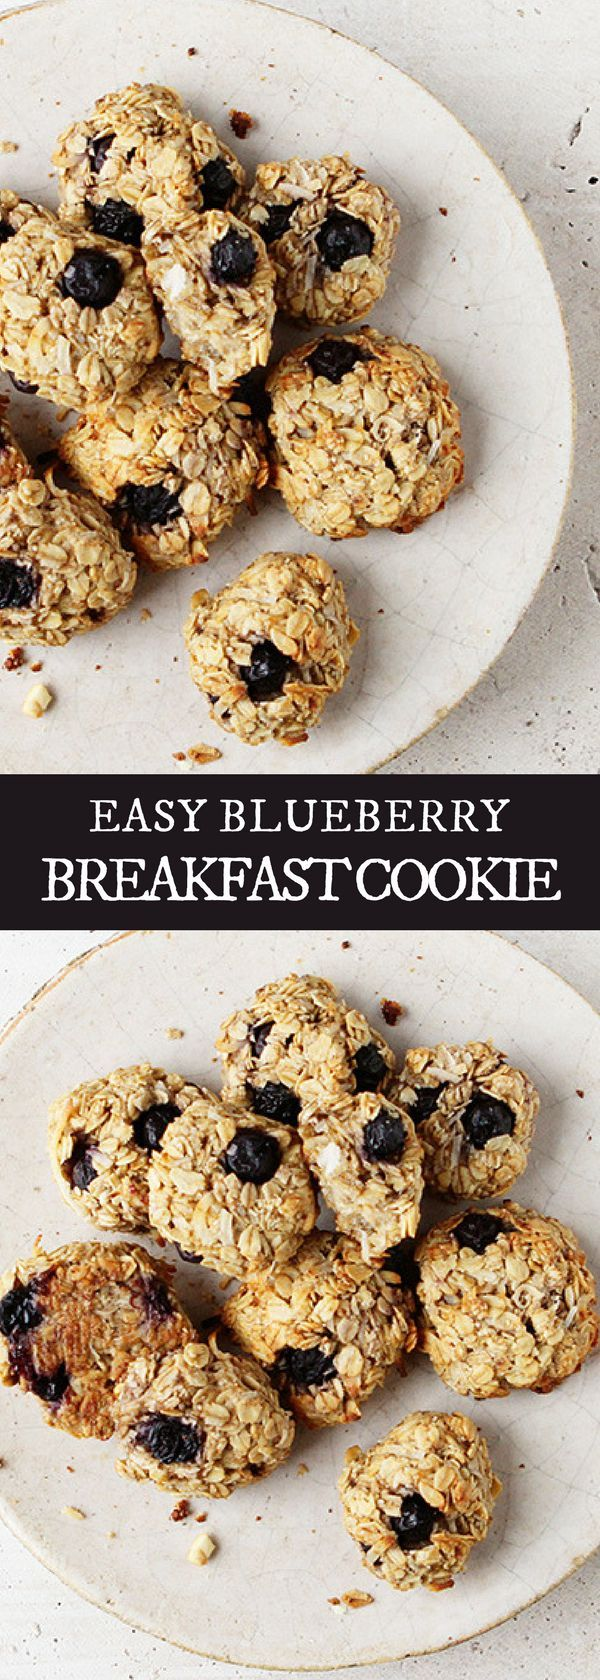 EASY BLUEBERRY BREAKFAST COOKIE | If you're looking for easy breakfast recipes, this blueberry breakfast cookie is perfect for you! Delicious, easy, healthy and full of flavor! Check us out @iamhomesteader for more healthy homemade cooking and easy homesteading recipes you can do at home.  #Homestead #homesteading #food #healthyrecipes #healthy #recipeoftheday #recipeideas